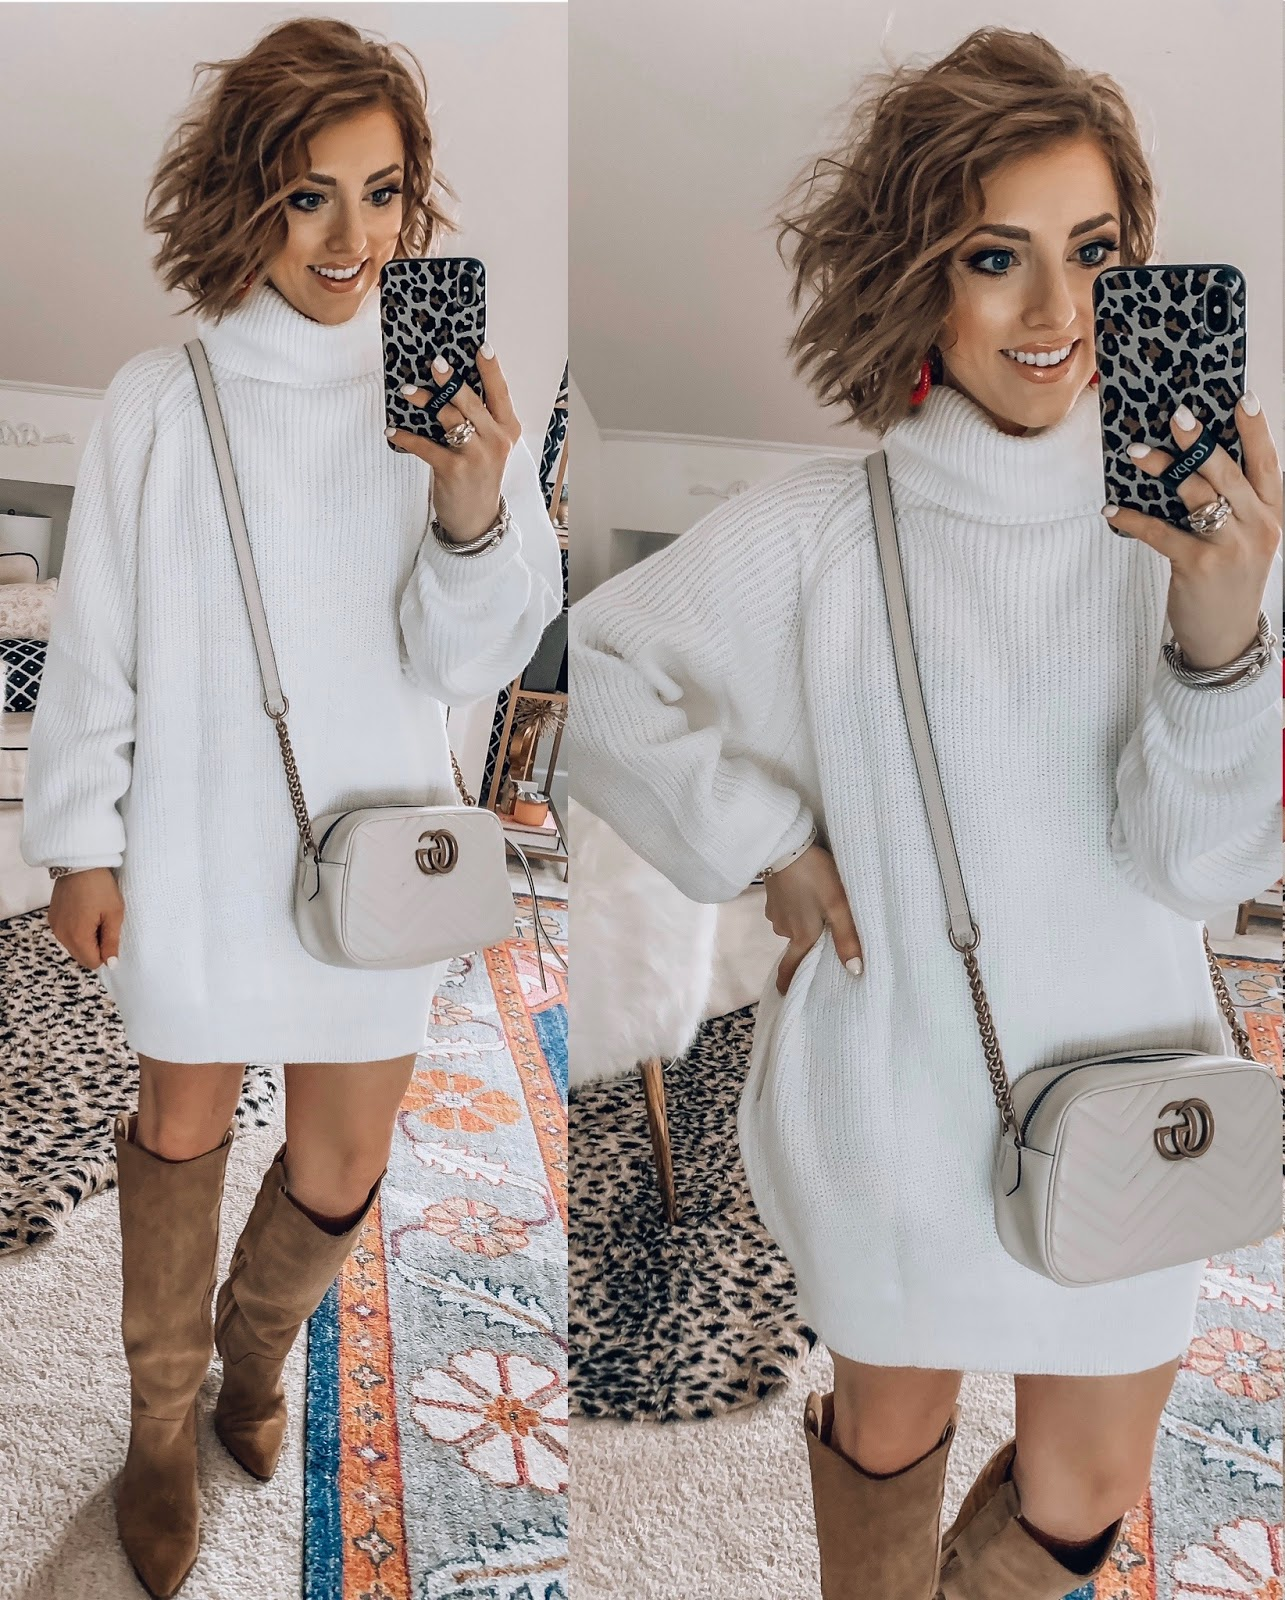 Recent Amazon Finds - Under $40 Sweater Dress with Gucci Bag - Something Delightful Blog #AmazonFashion #RecentFinds #Hearts #ValentinesDay #AffordableFashion